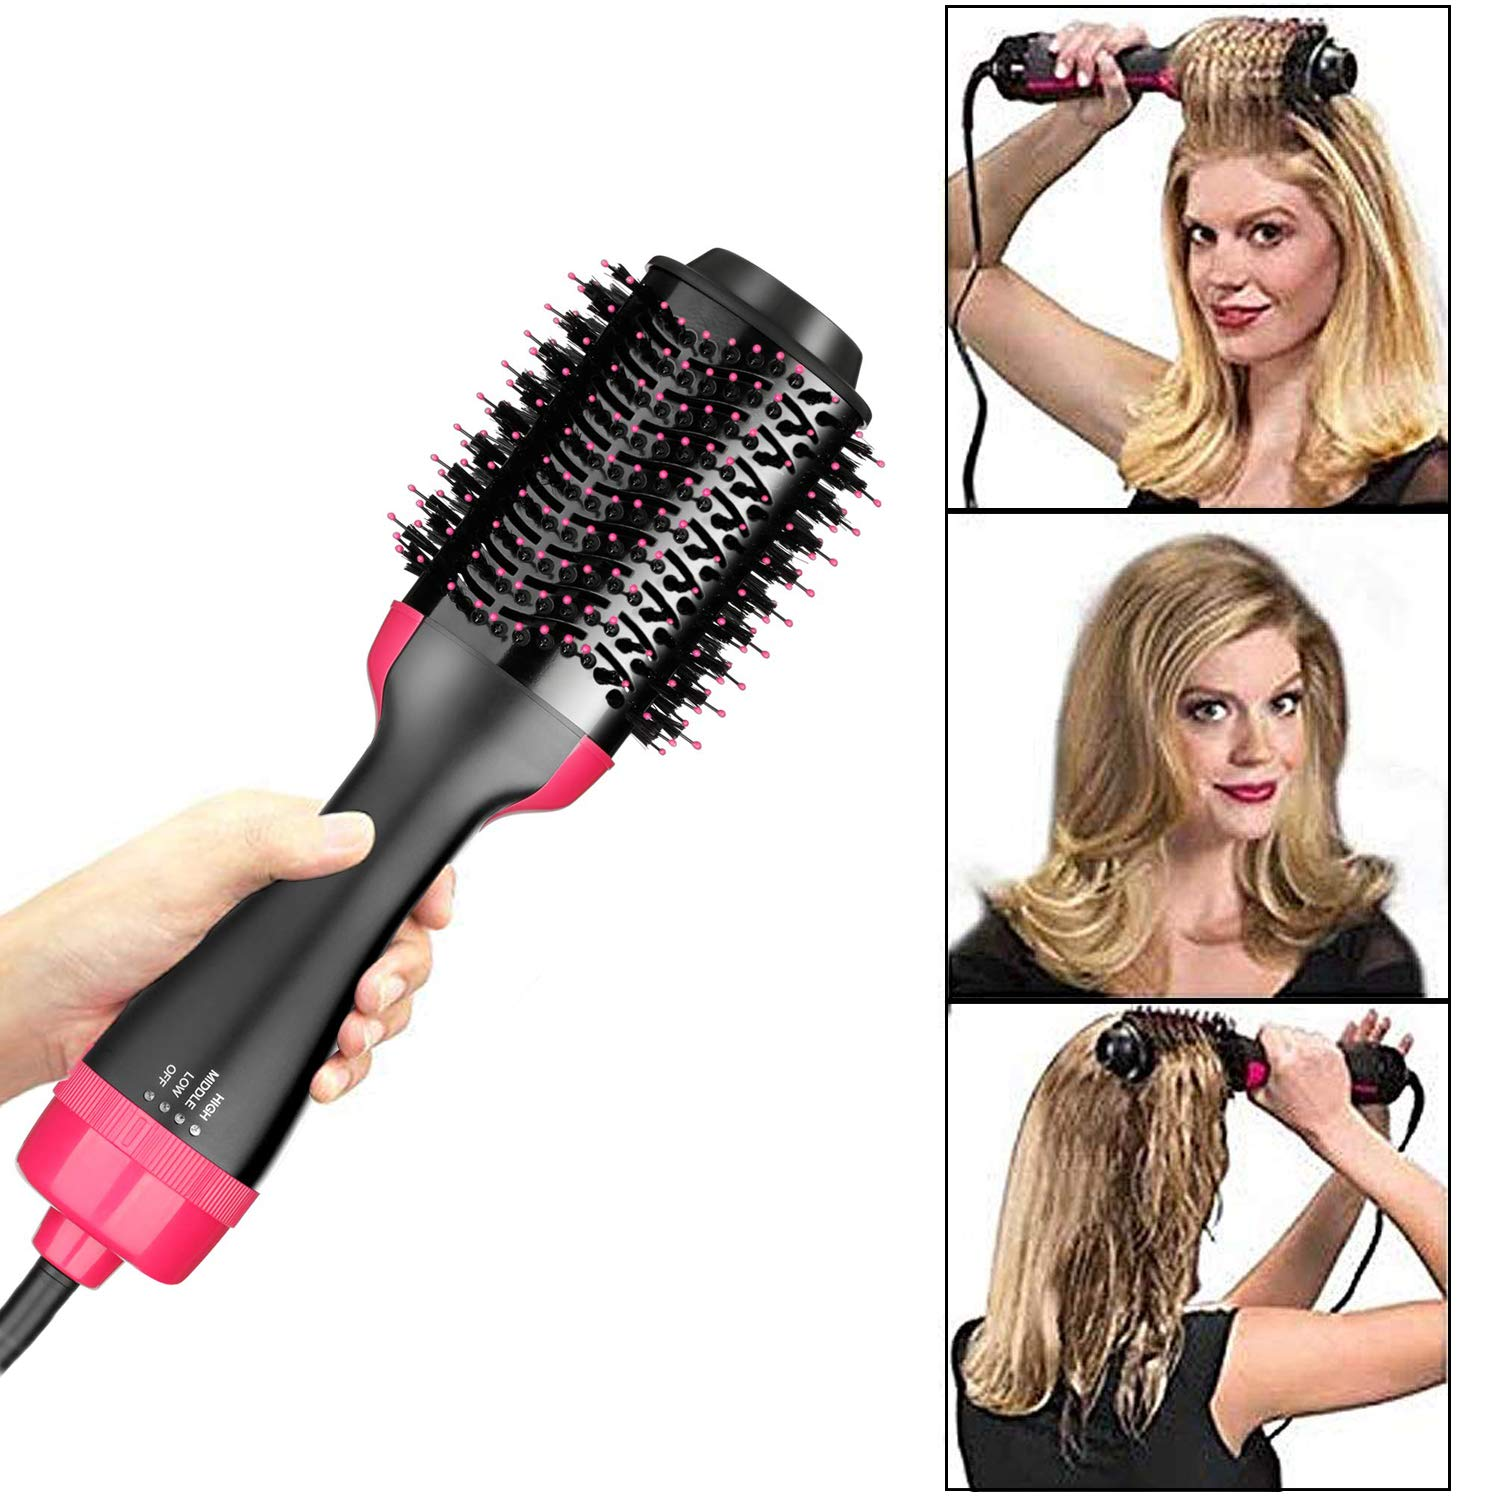 One Step Hair Dryer and Styler and Volumizer, Hot Air Brush Styler and Dryer In One Hair Straightener and Curler for Hair Styling Tools